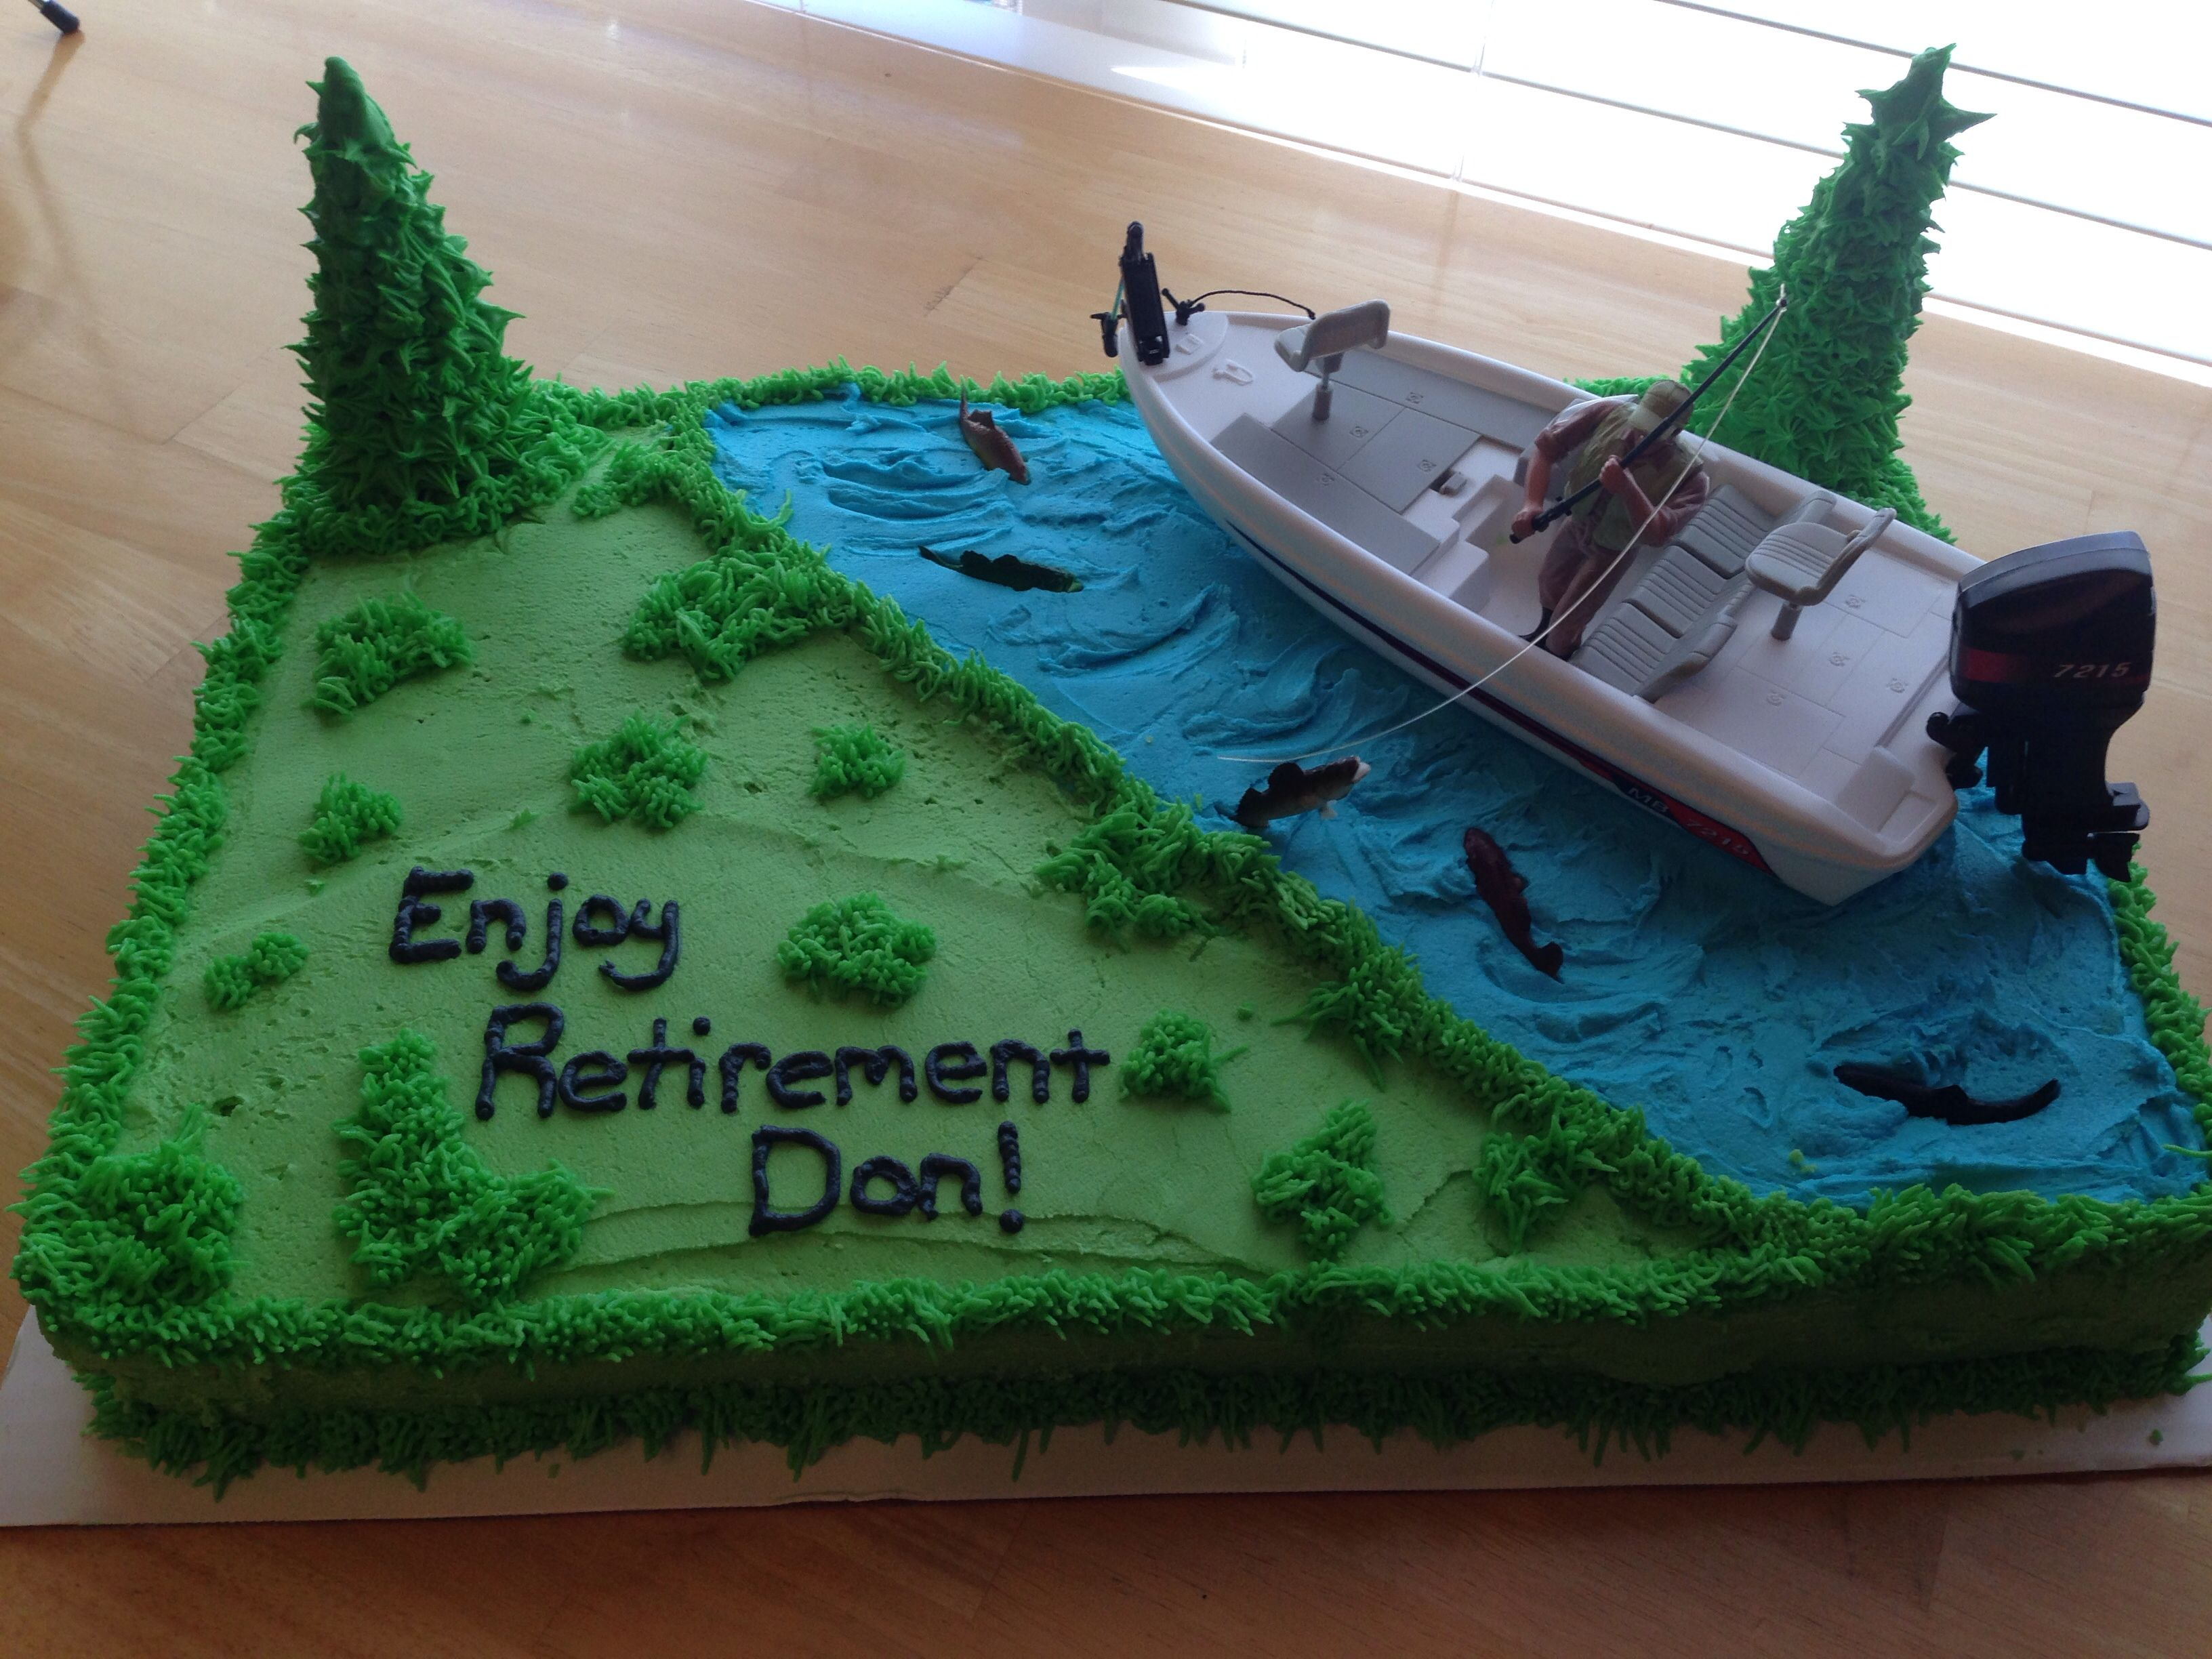 Fishing retirement cake i did for my dad retirement